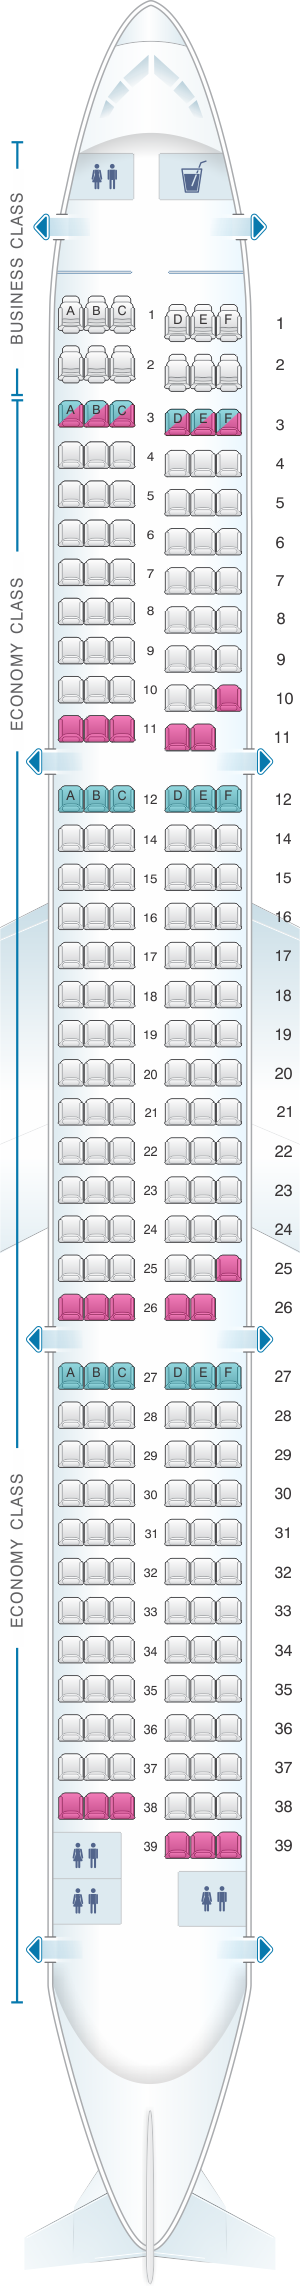 Seat map for Air Moldova Airbus A321